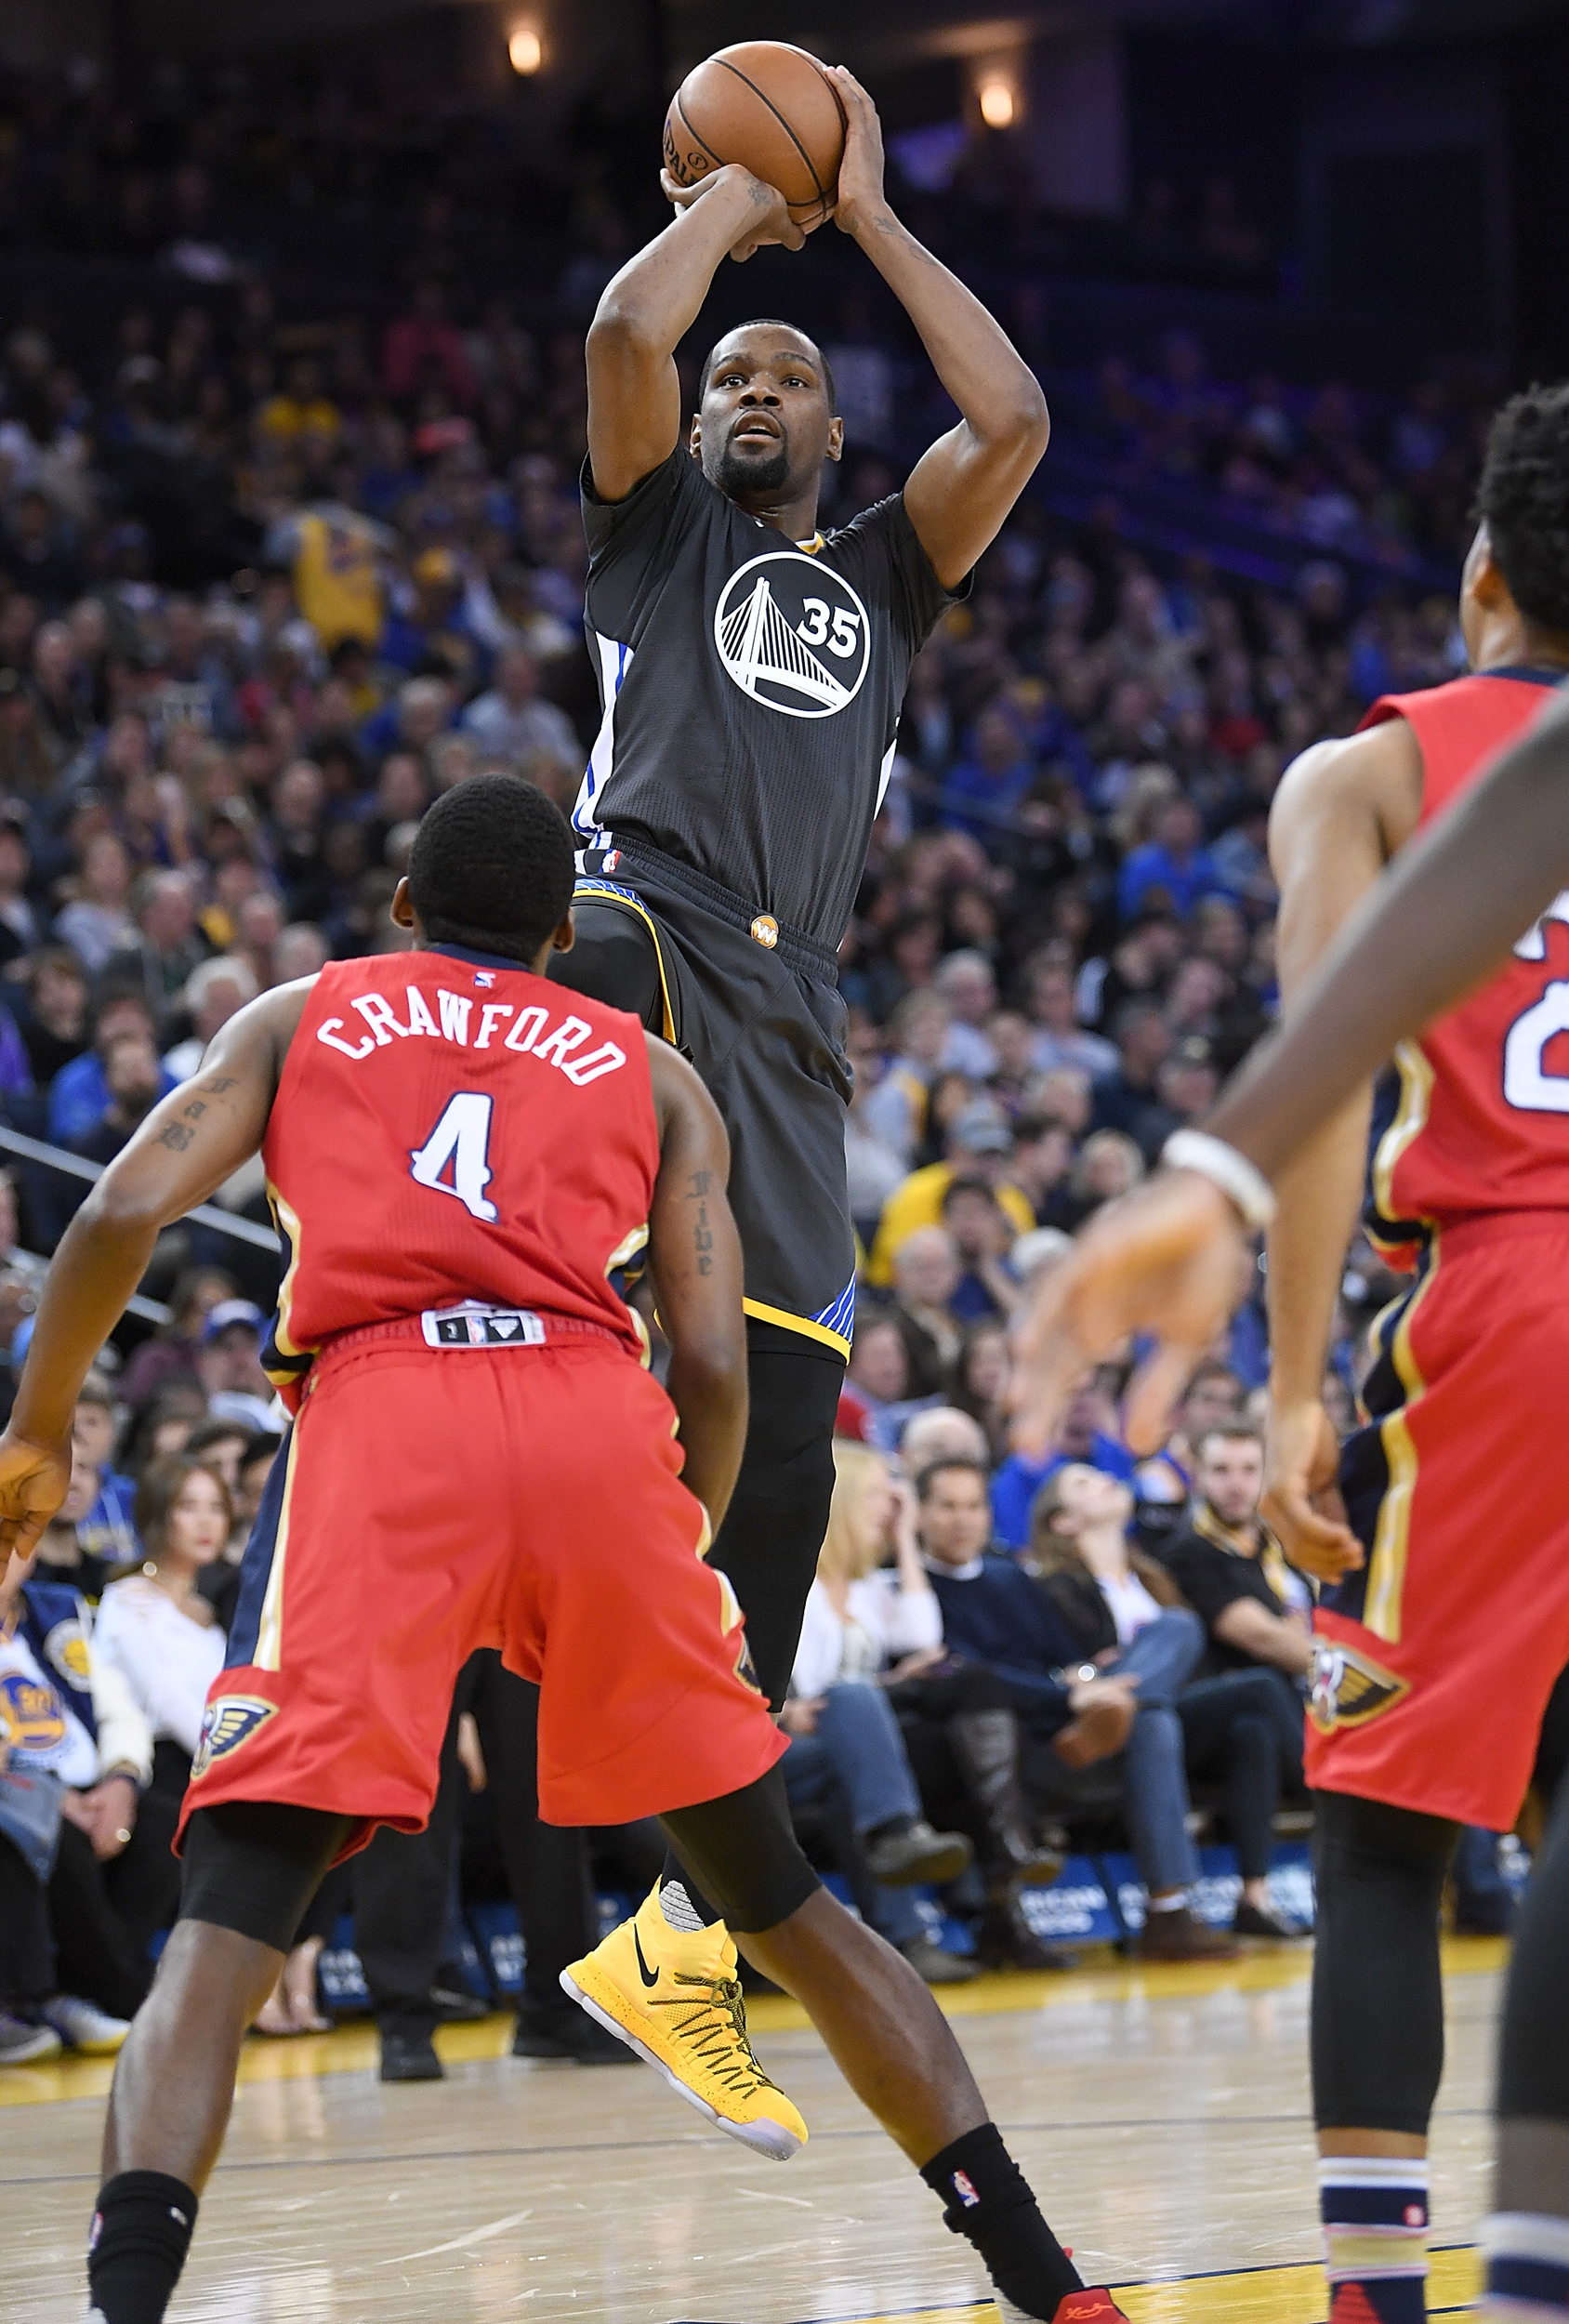 f5edfa1c4ad7 Kevin Durant (No. 35) of the Golden State Warriors goes up to shoot over  Jordan Crawford (No. 4) of the New Orleans Pelicans in the fourth quarter  of their ...